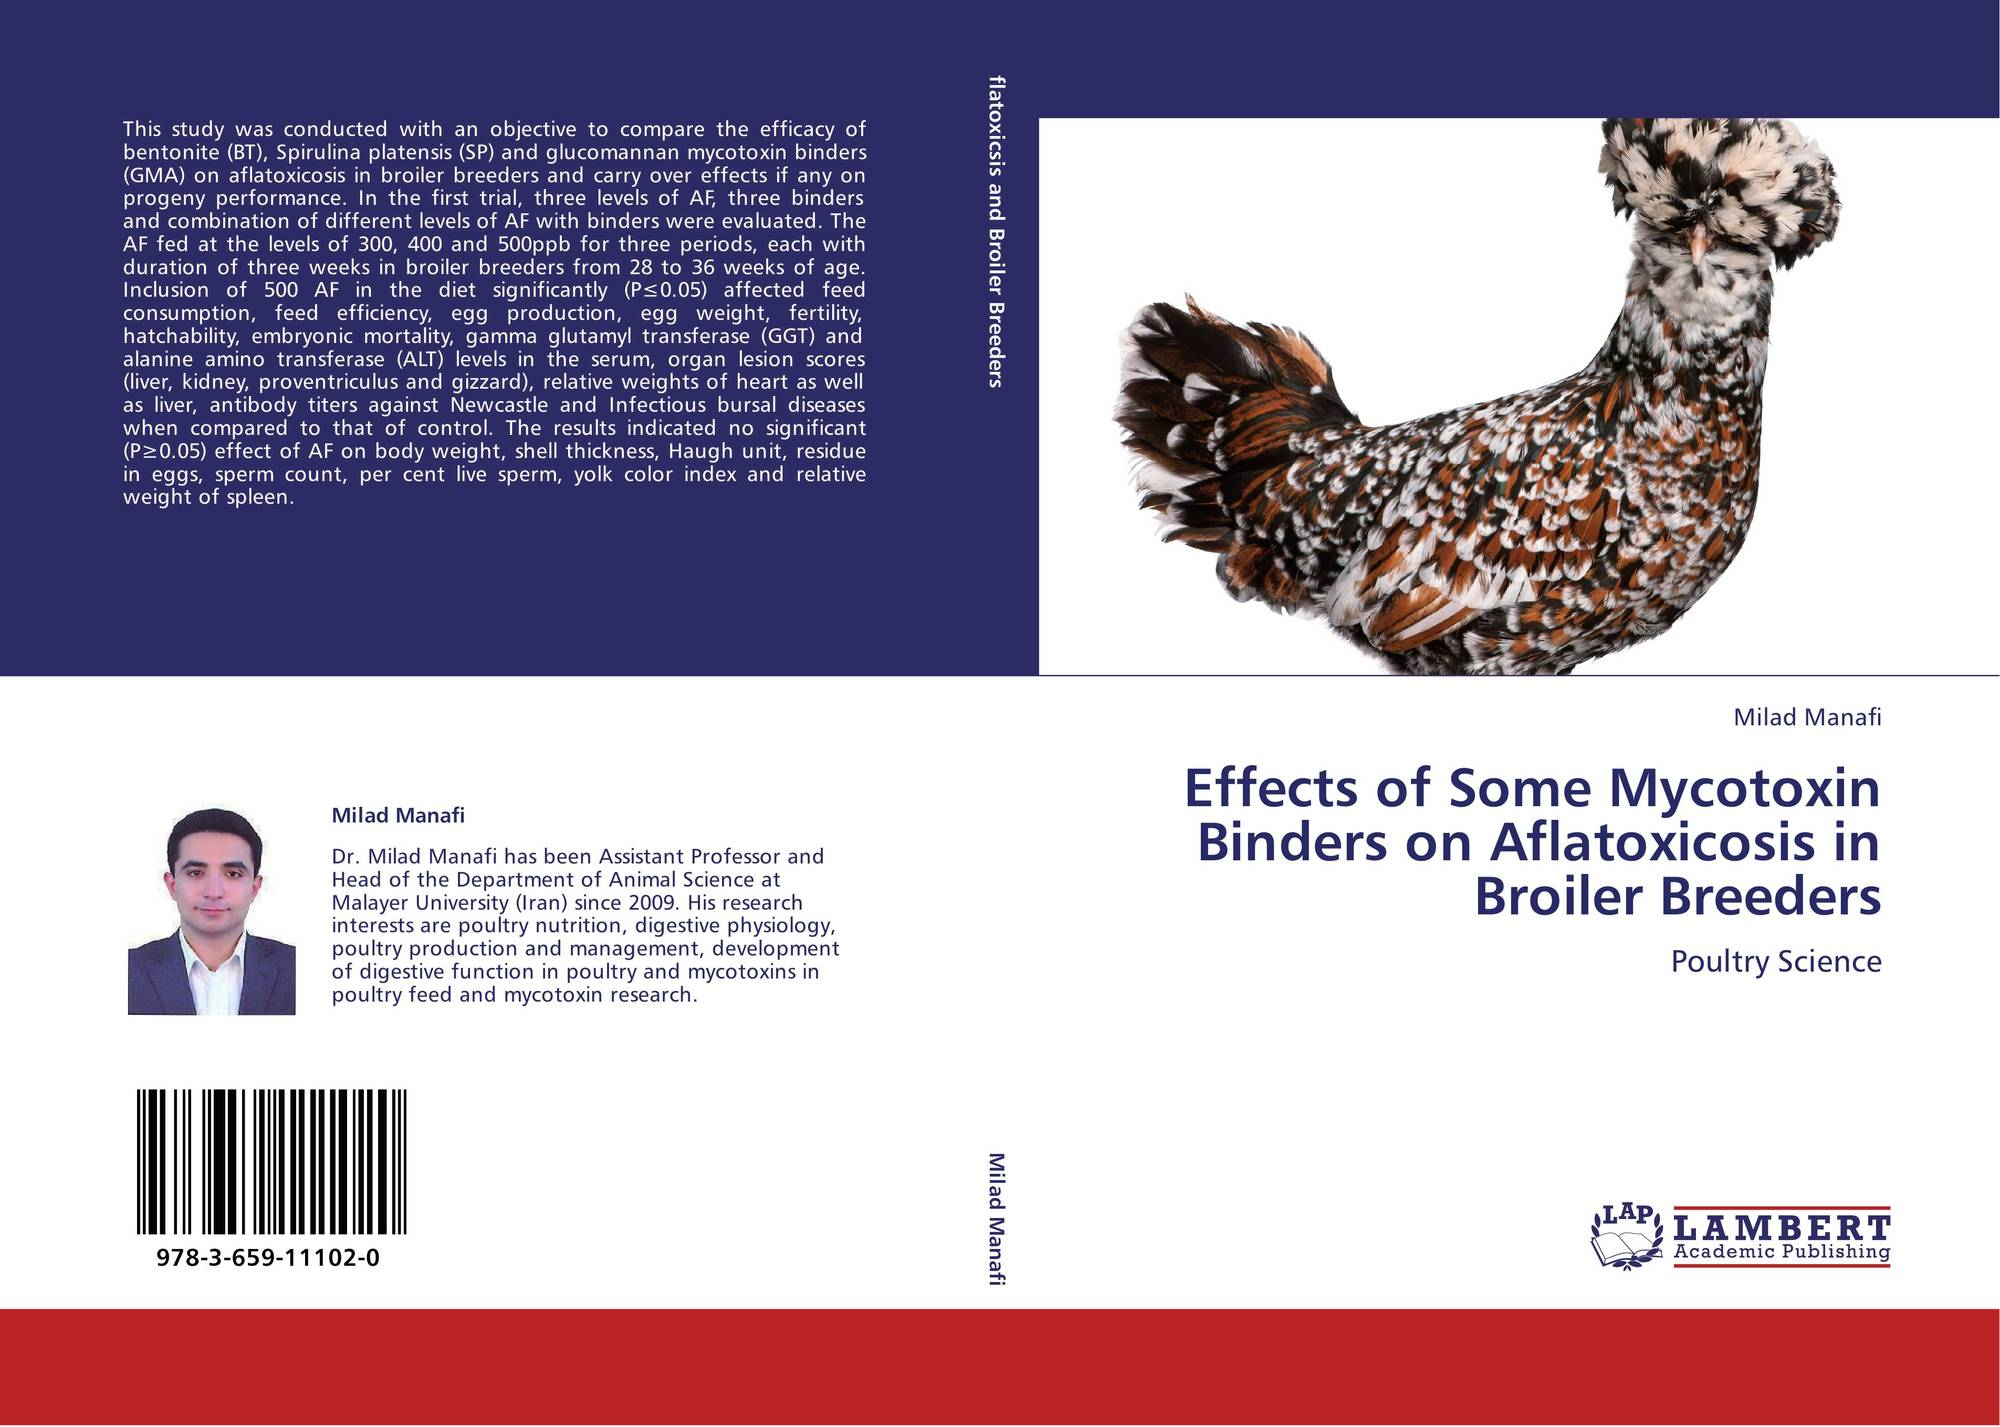 Effects of Some Mycotoxin Binders on Aflatoxicosis in Broiler